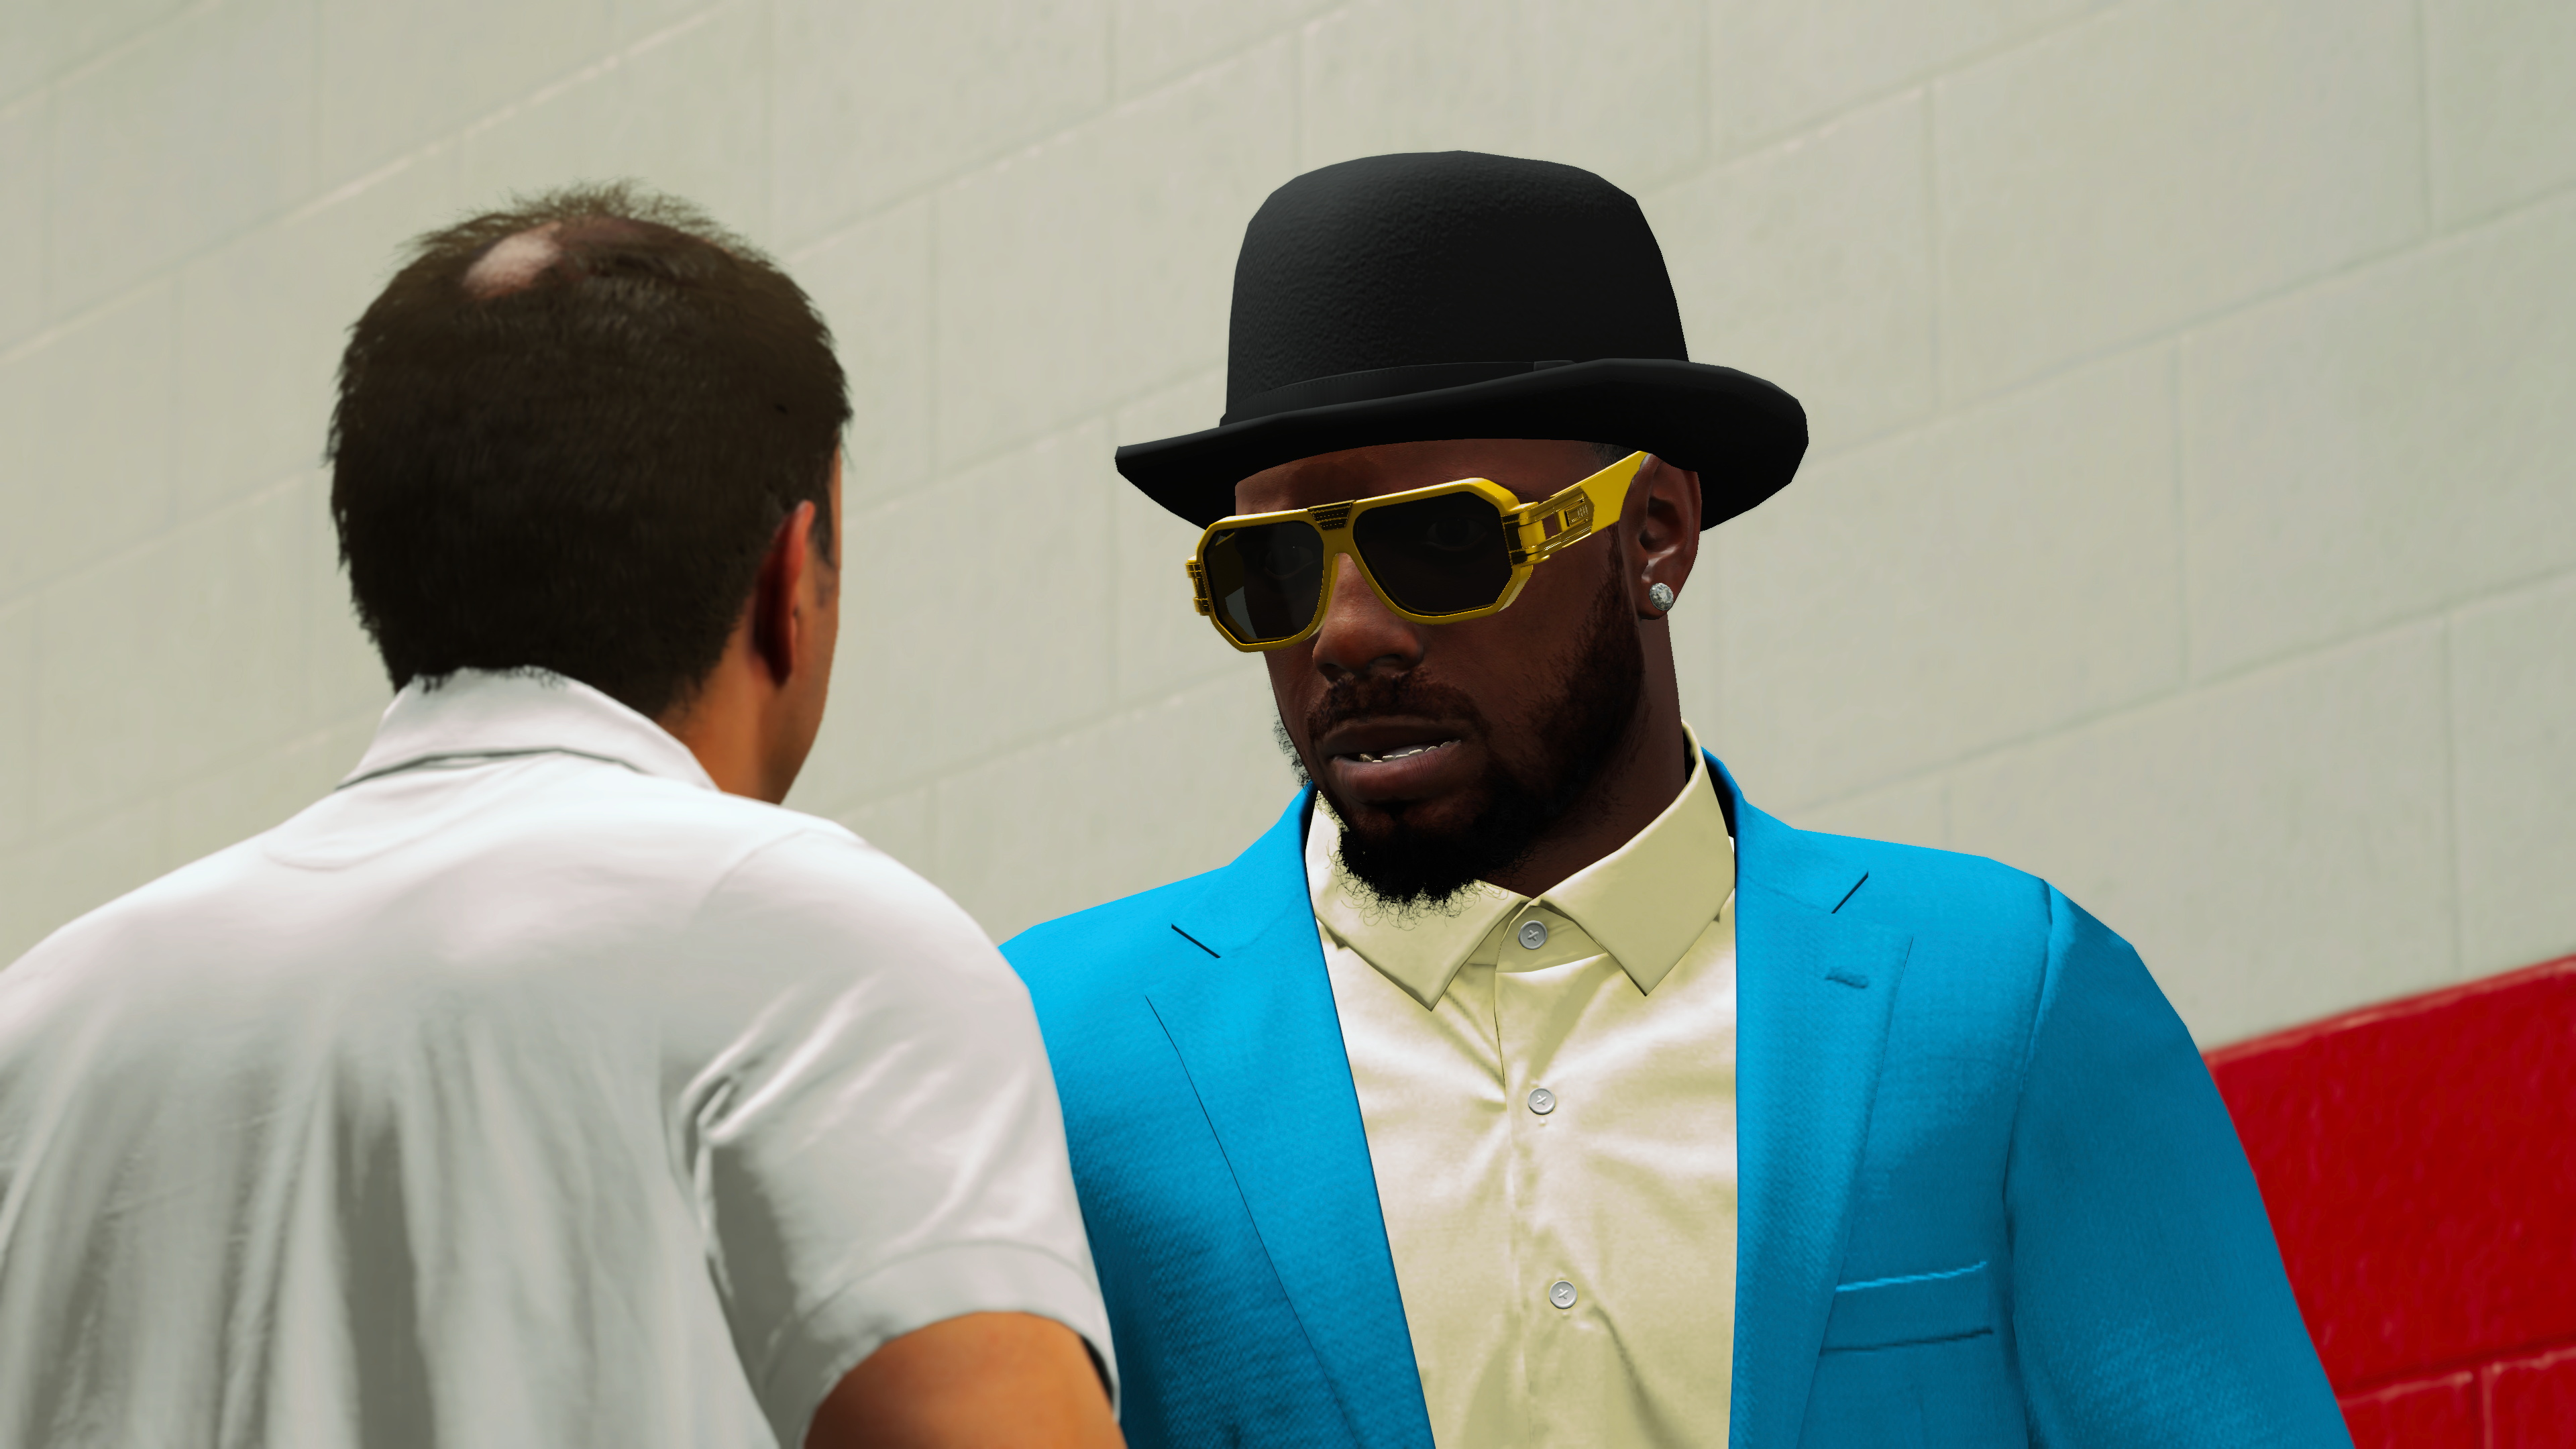 a guy in a white shirt with a bald spot on the back of his head talks to a large NBA player in flashy street clothes and garish sunglasses